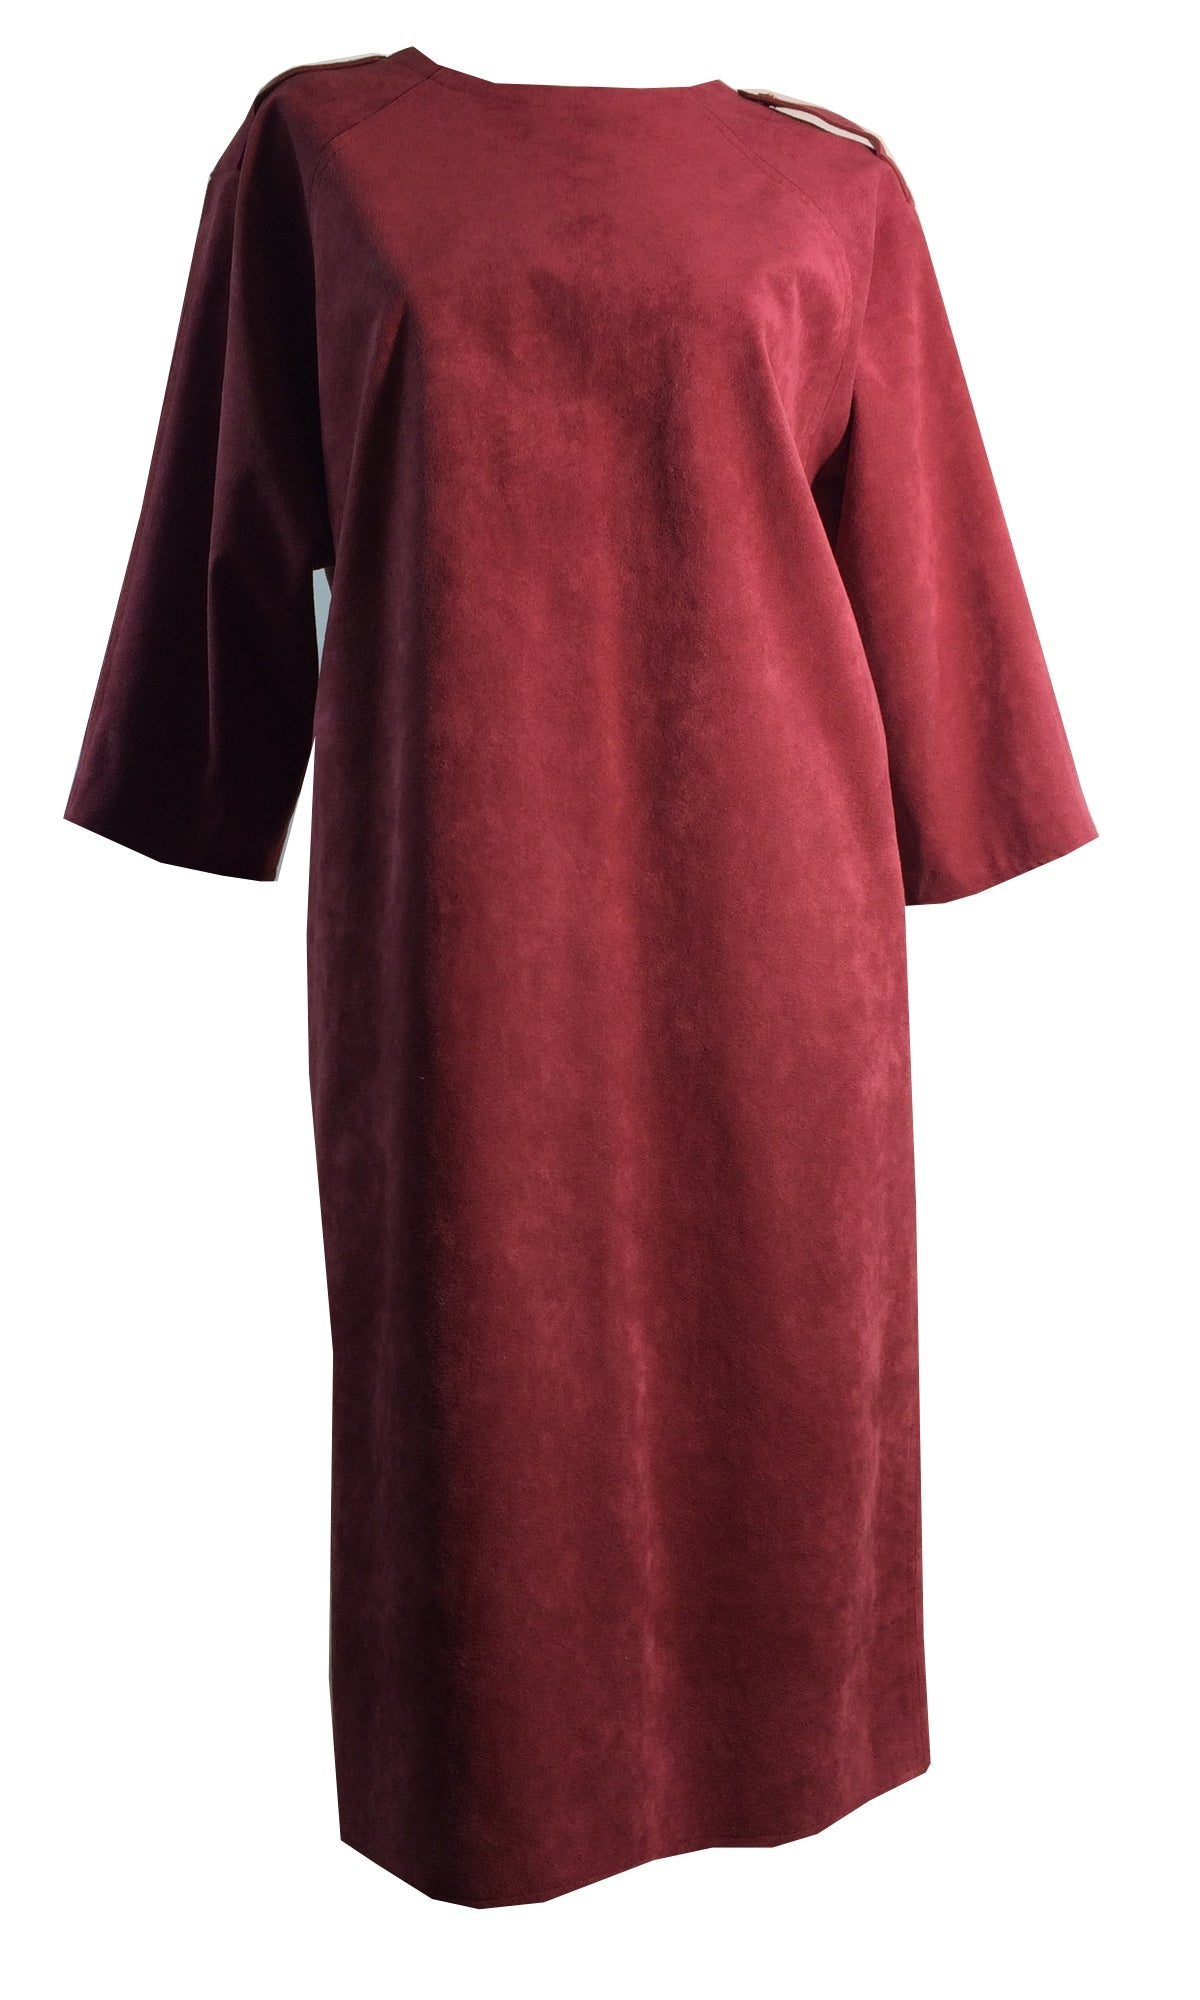 Raspberry Wine Ultrasuede Wedge Dress circa 1980s